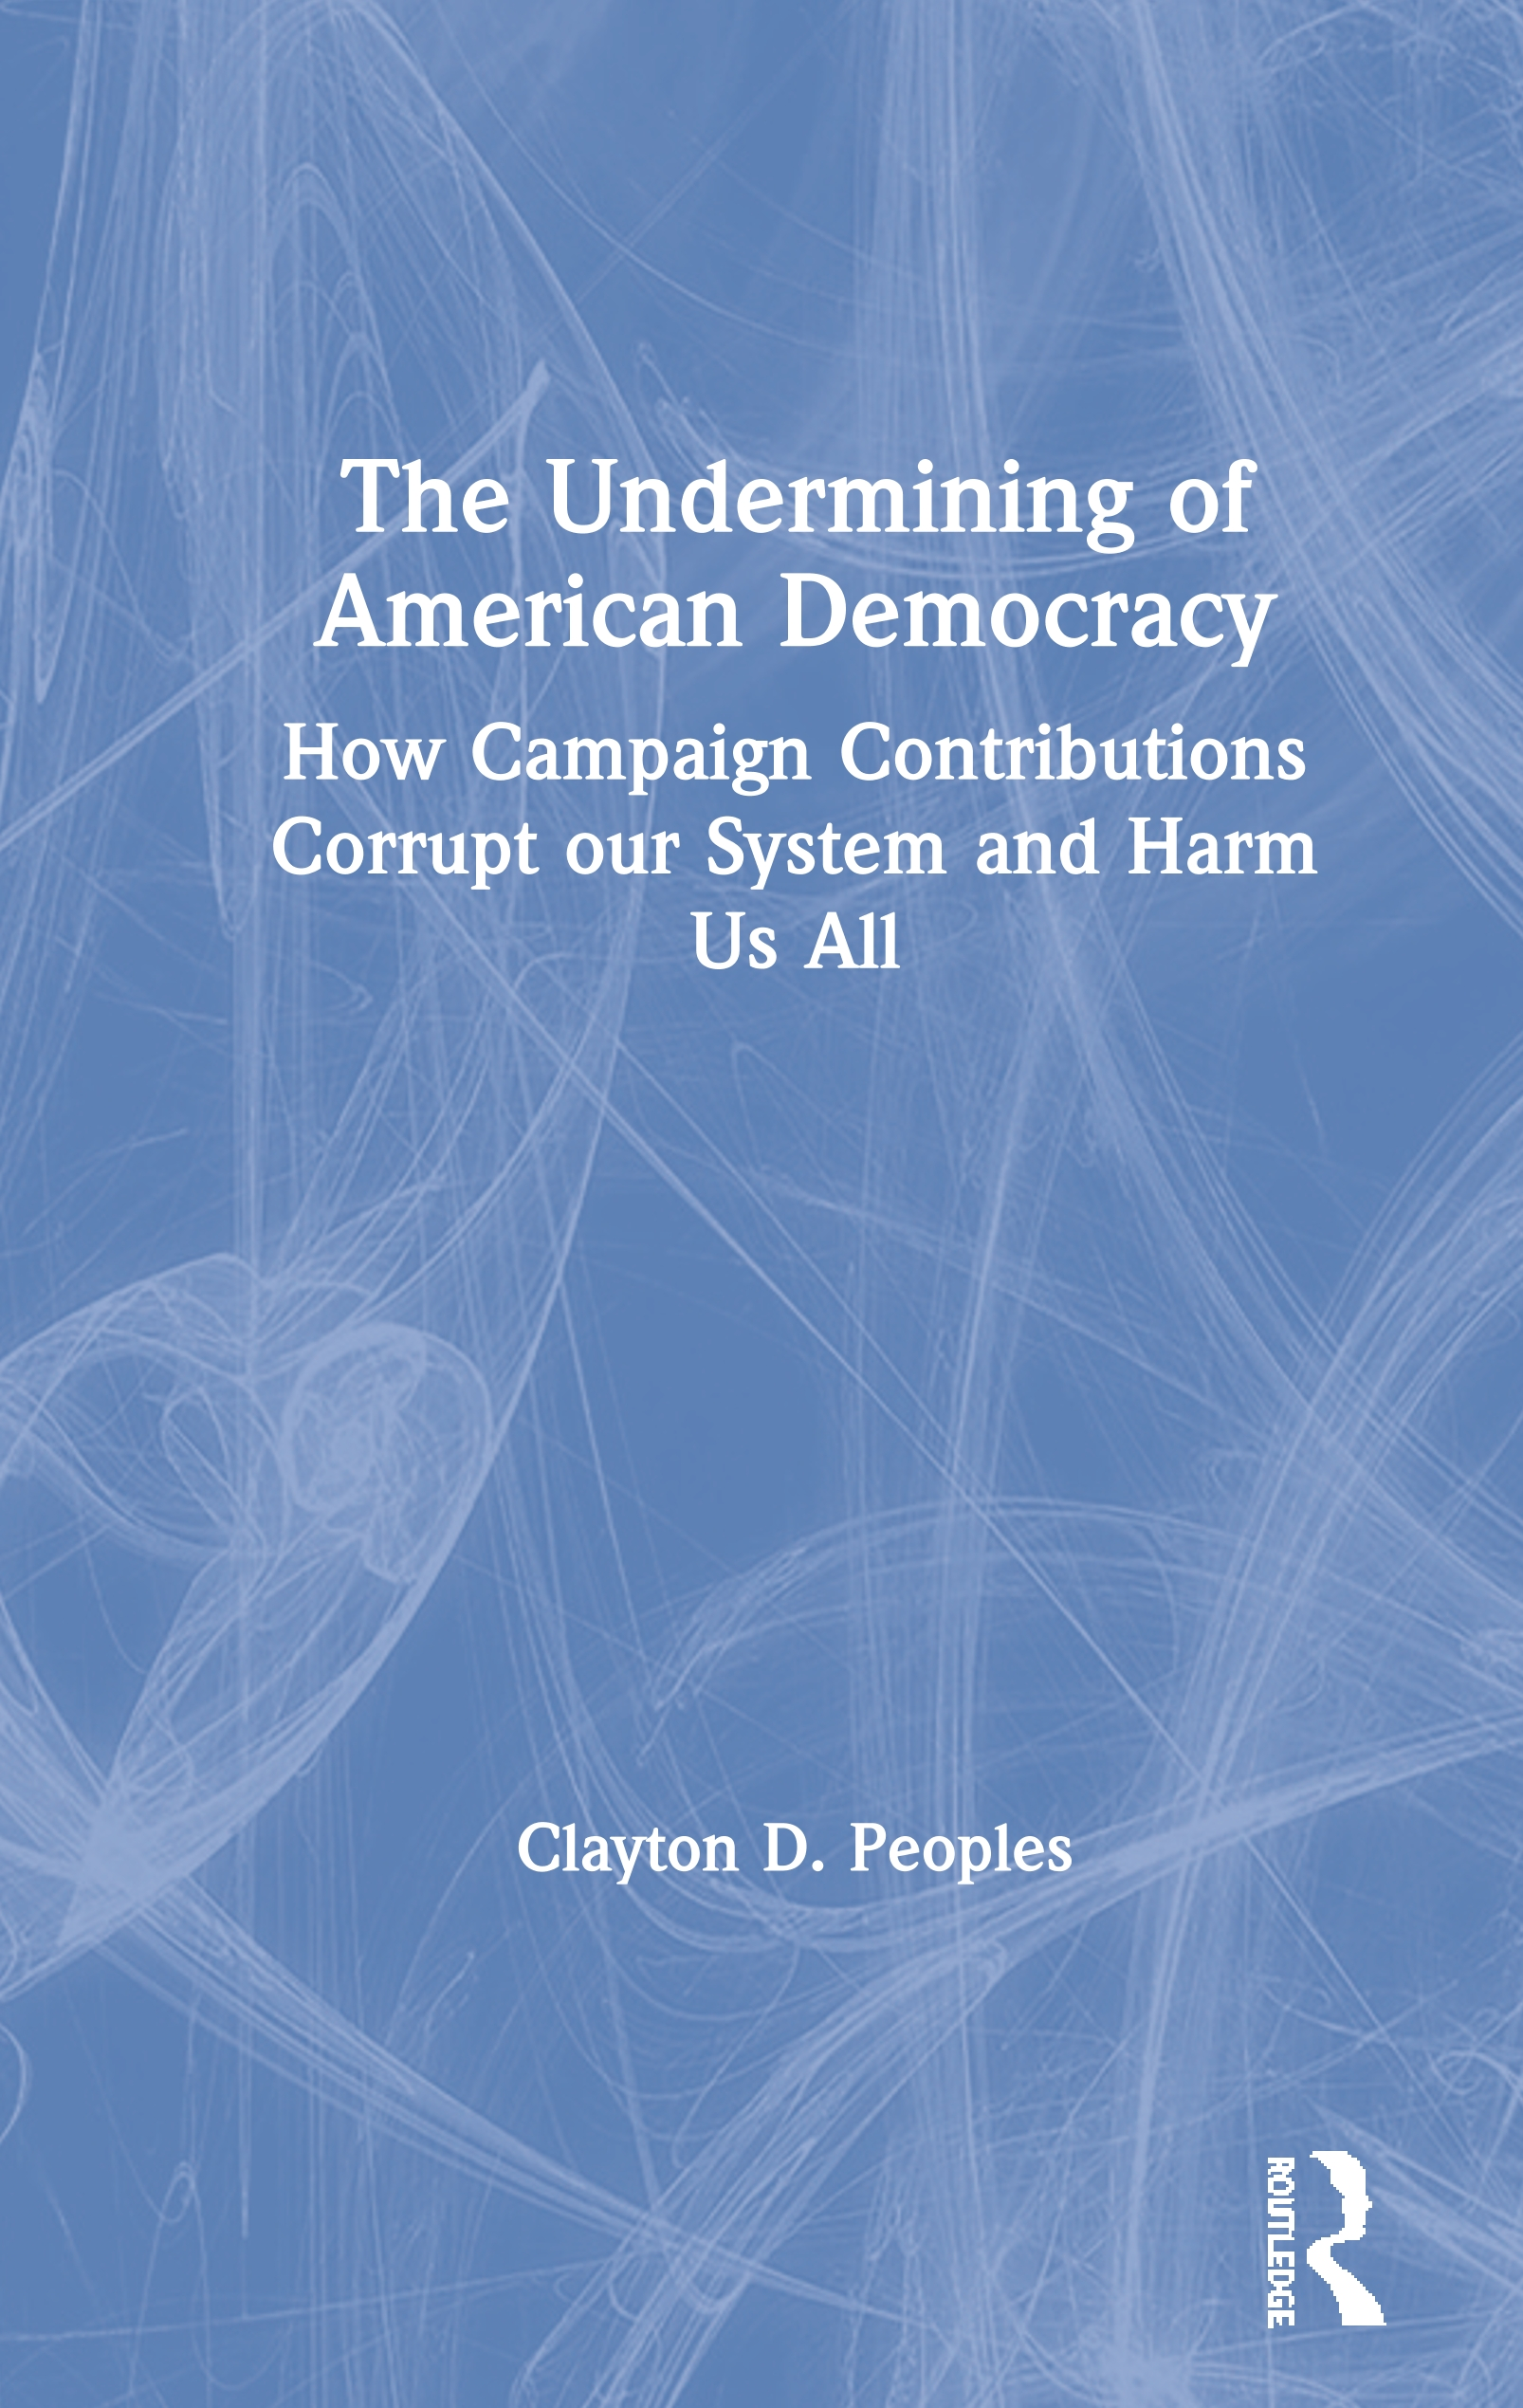 The Undermining of American Democracy: How Campaign Contributions Corrupt our System and Harm Us All book cover